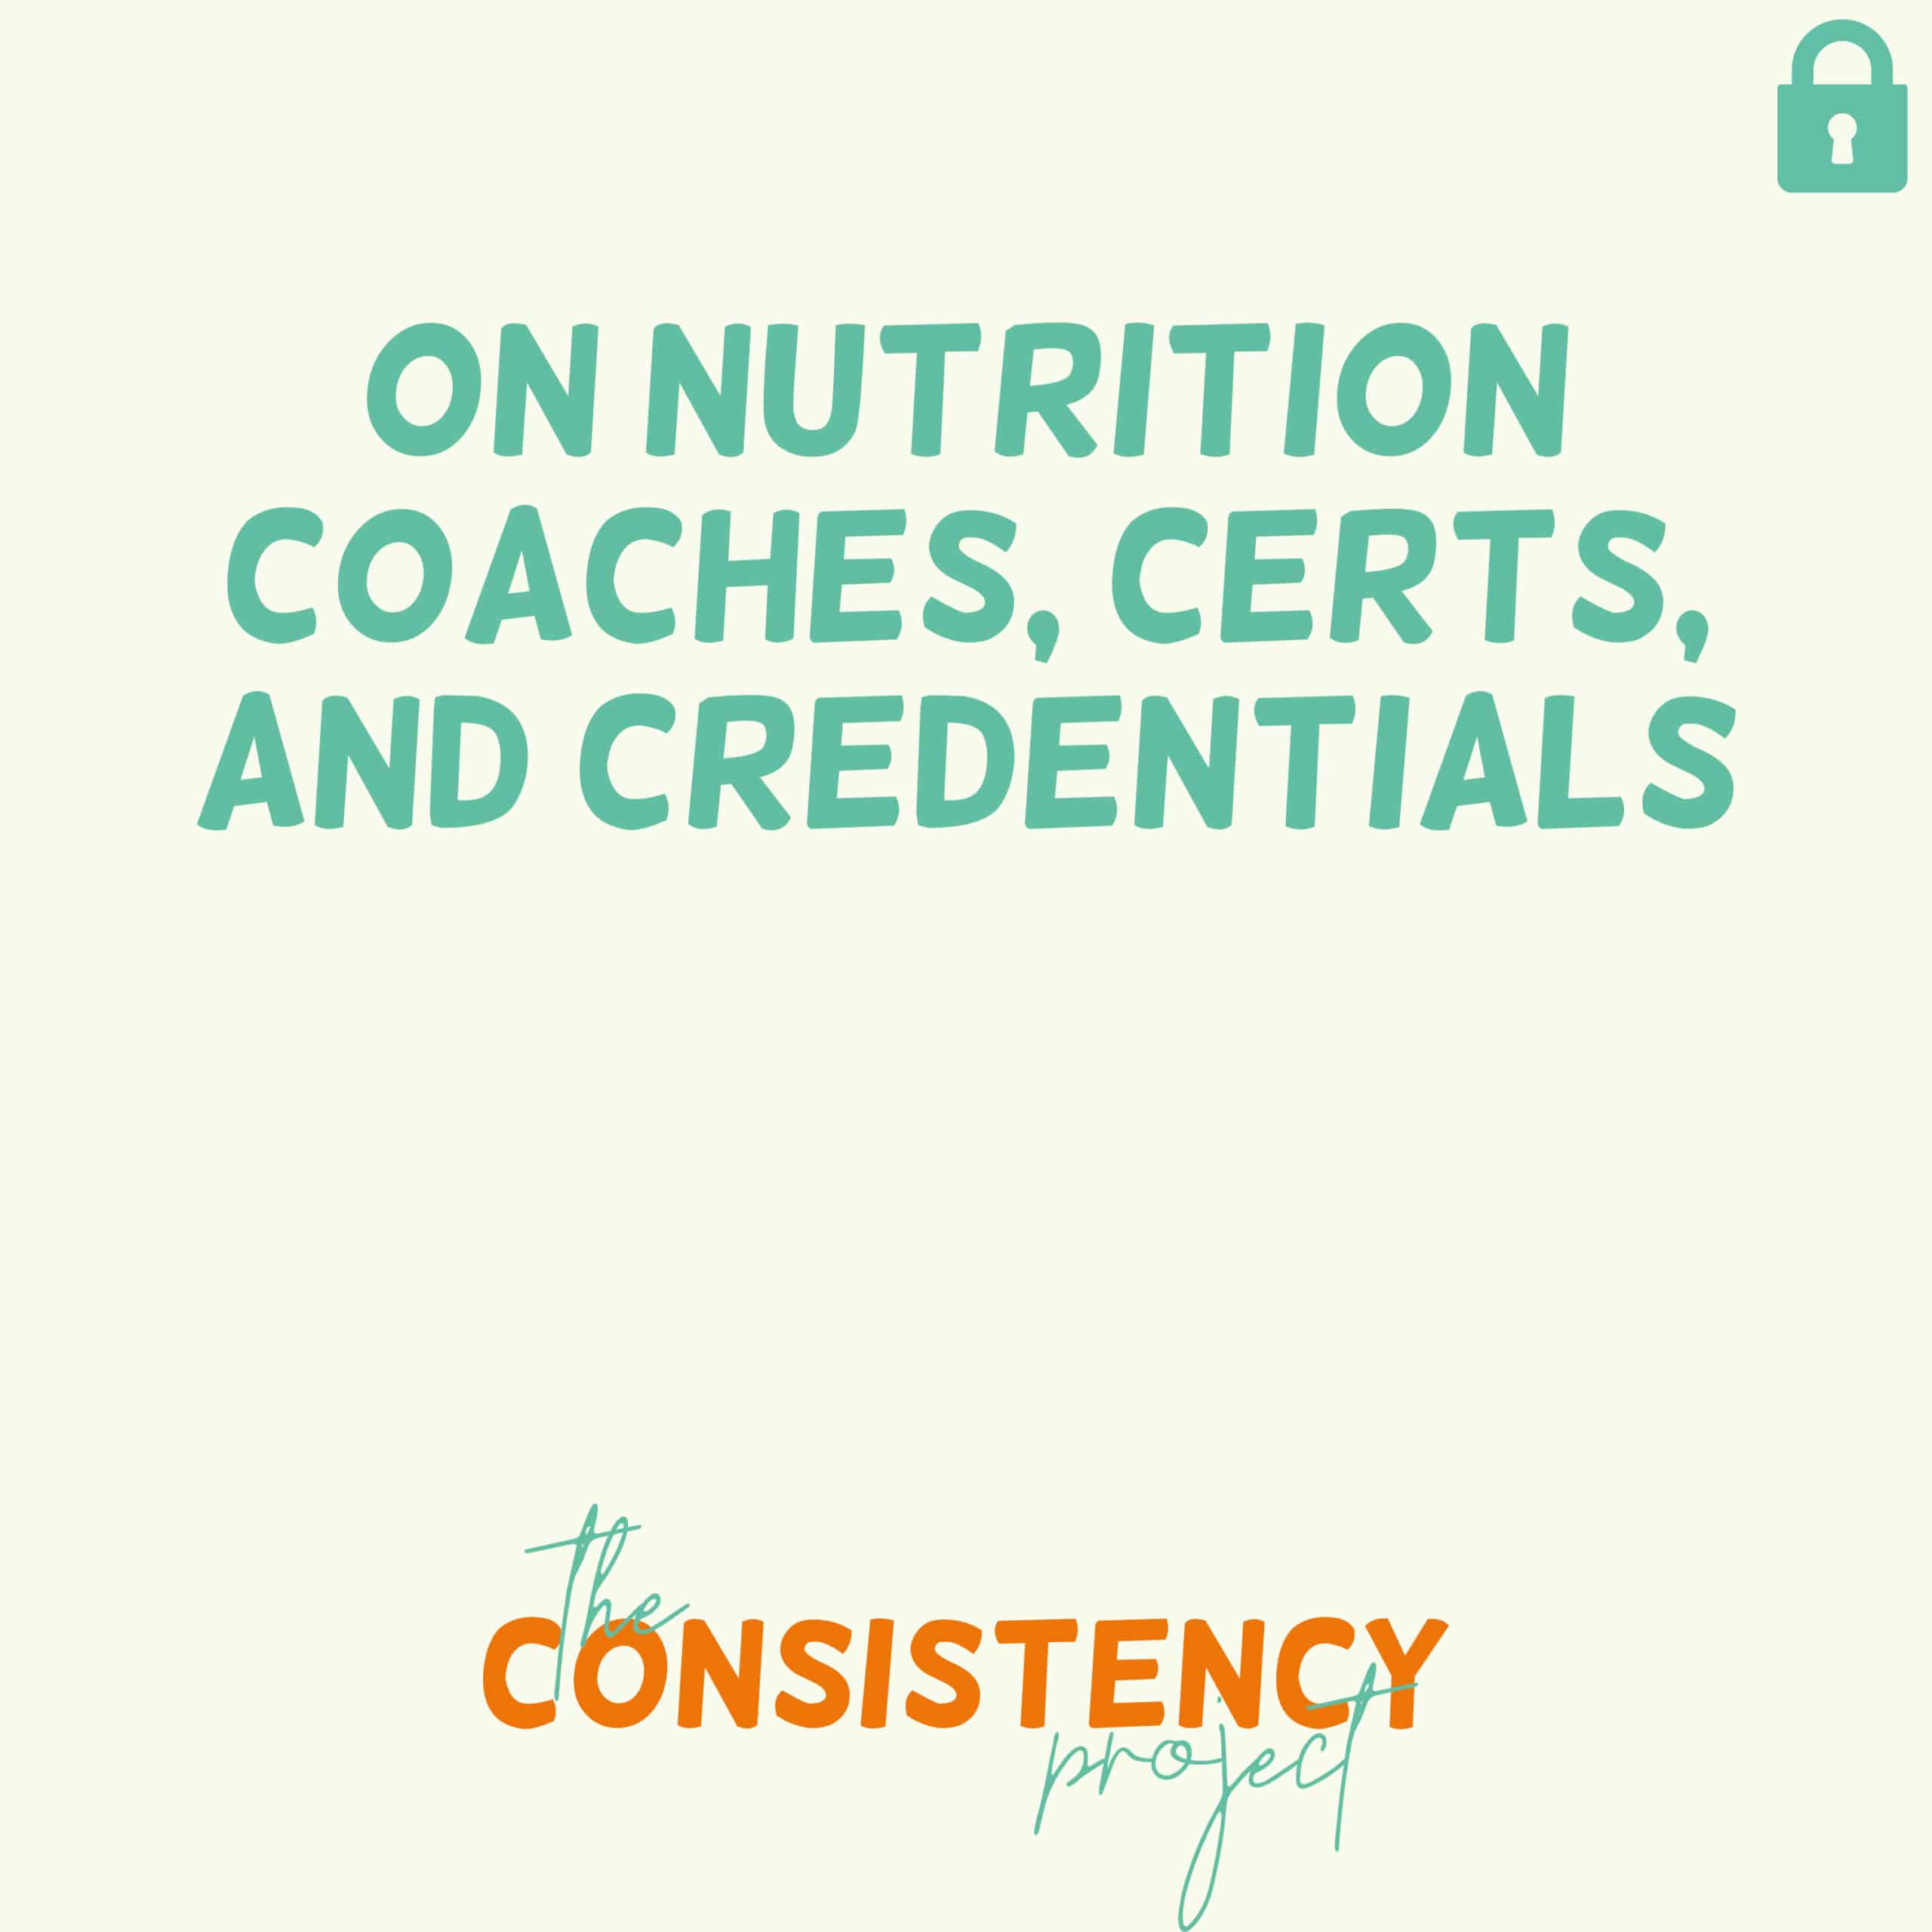 Episode 37: on Nutrition Coaches, Certs, and Credentials